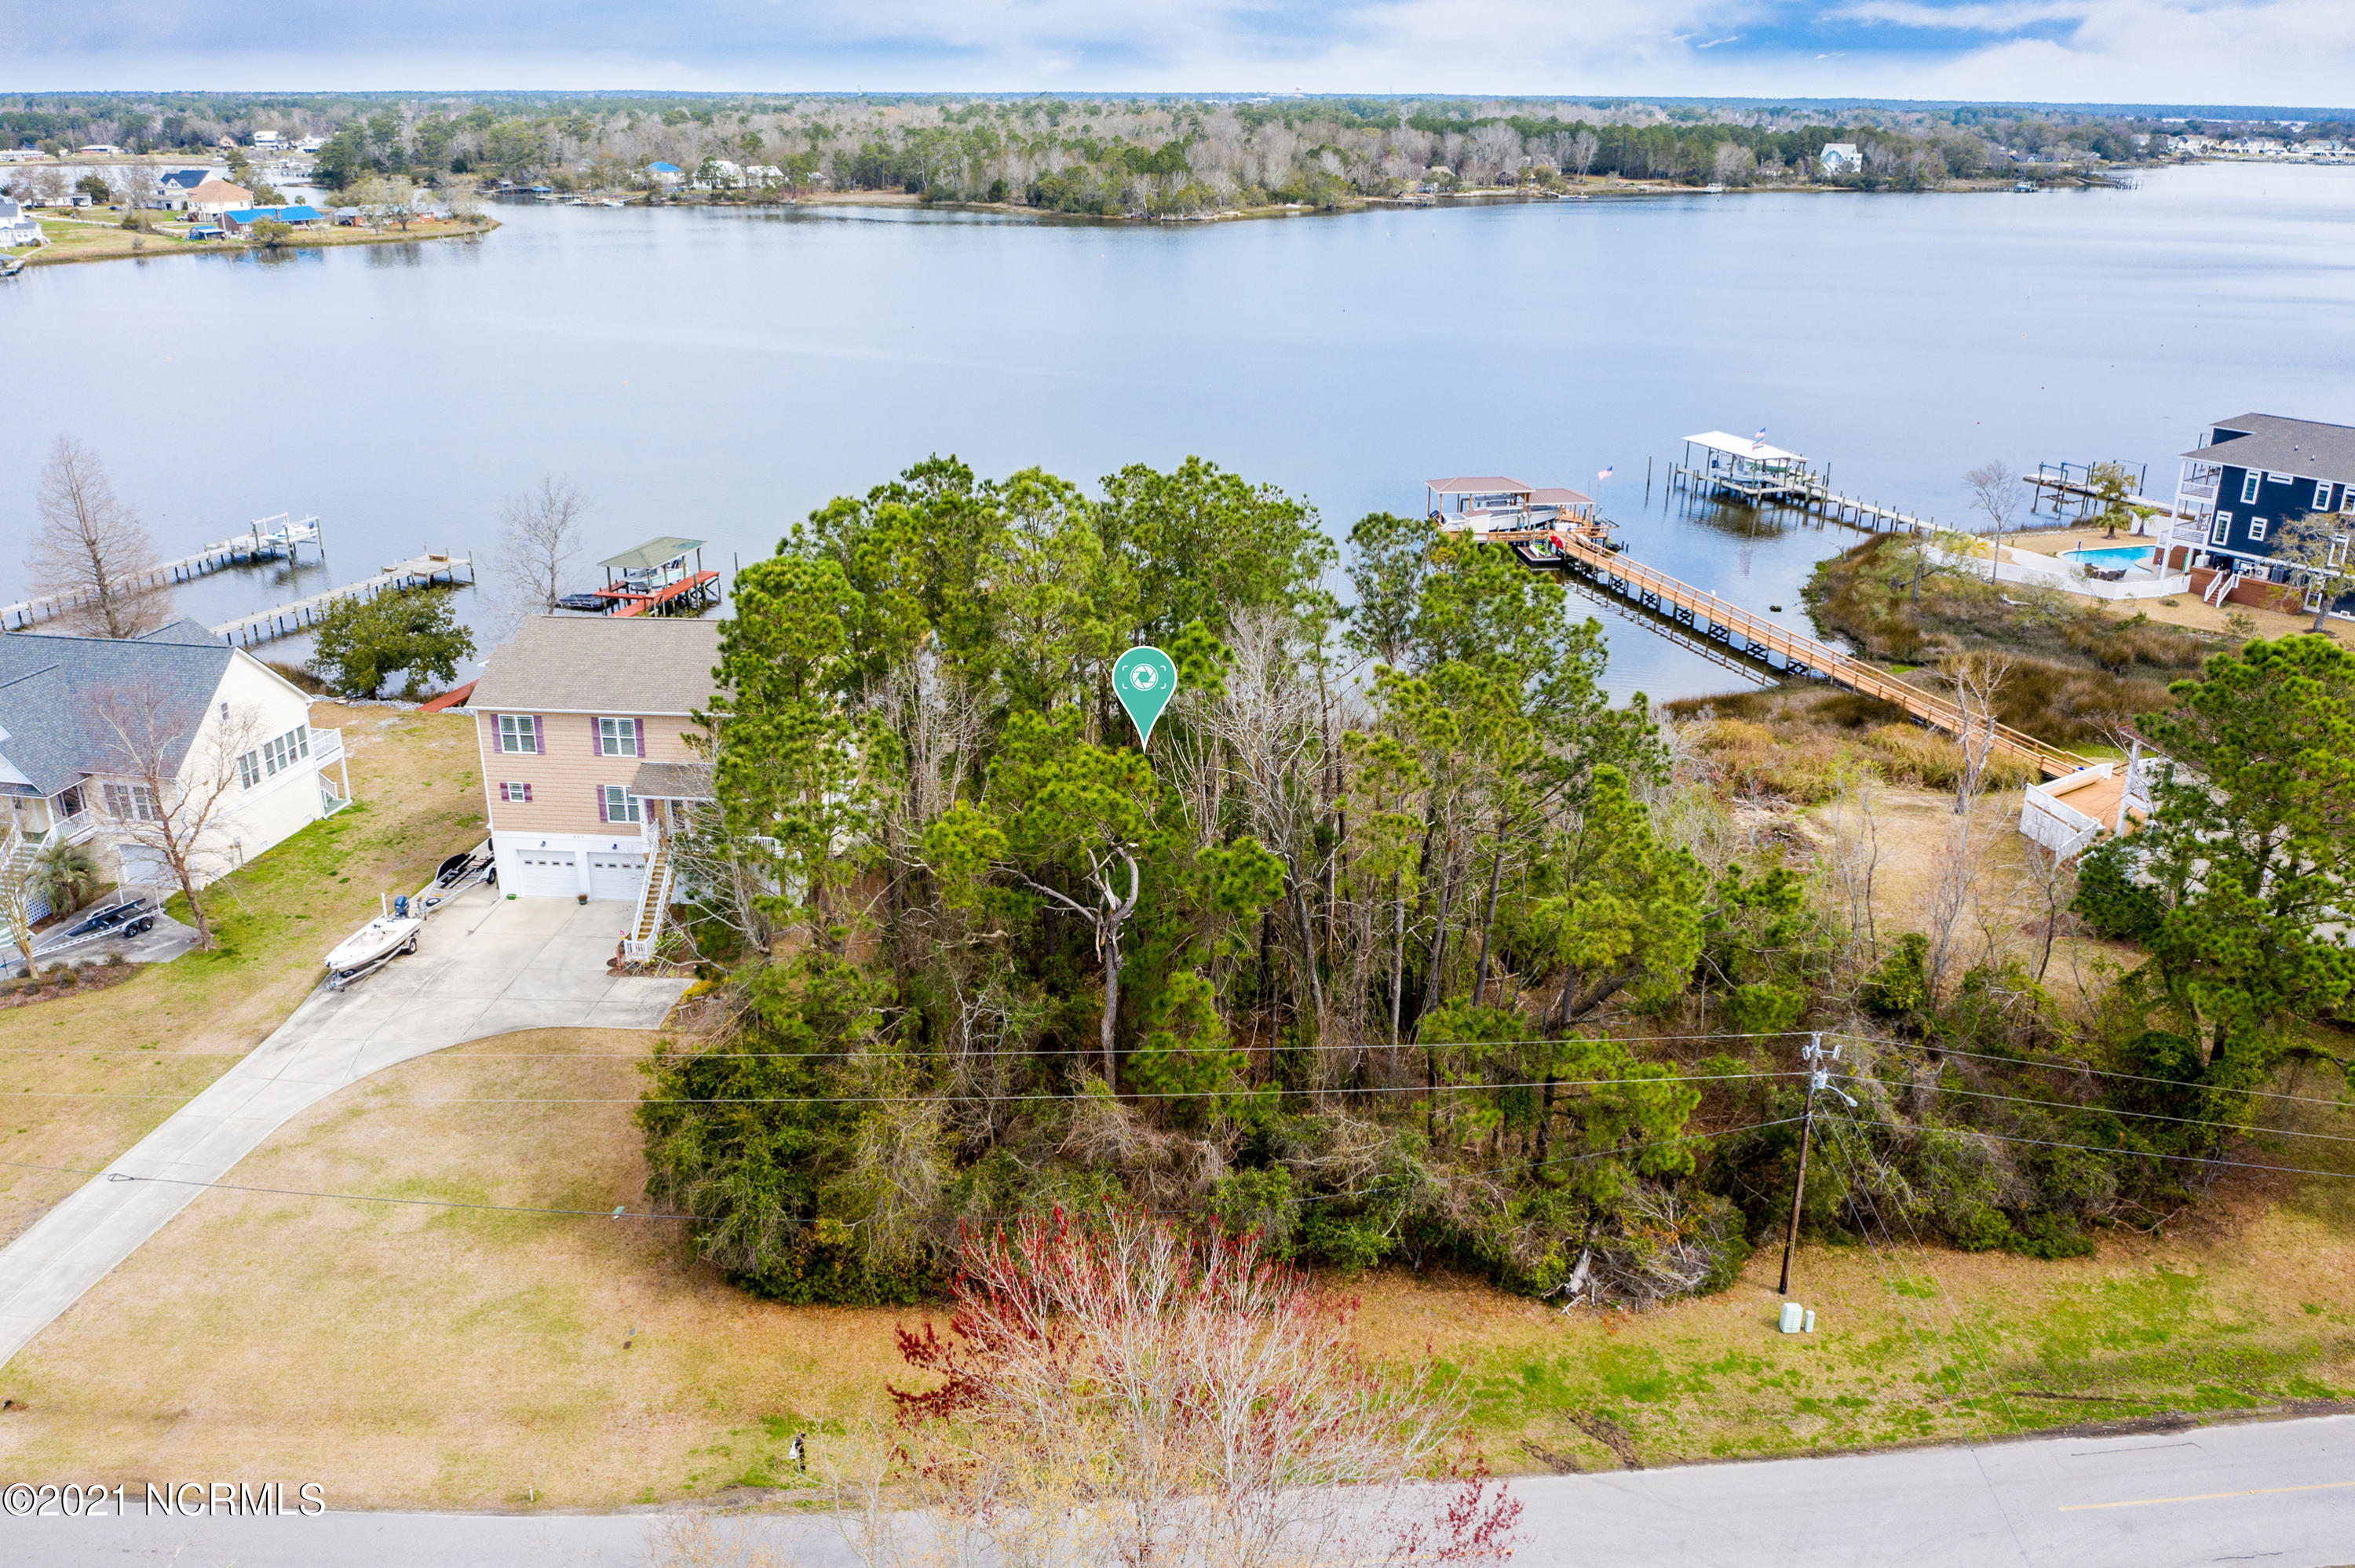 Don't miss this beautiful waterfront lot with picturesque views of Fullard Creek.  Located in an AE flood zone this is the perfect spot to build your dream home. Chadwick Shores is a gated community that offers a playground, picnic area and day dock for your enjoyment.